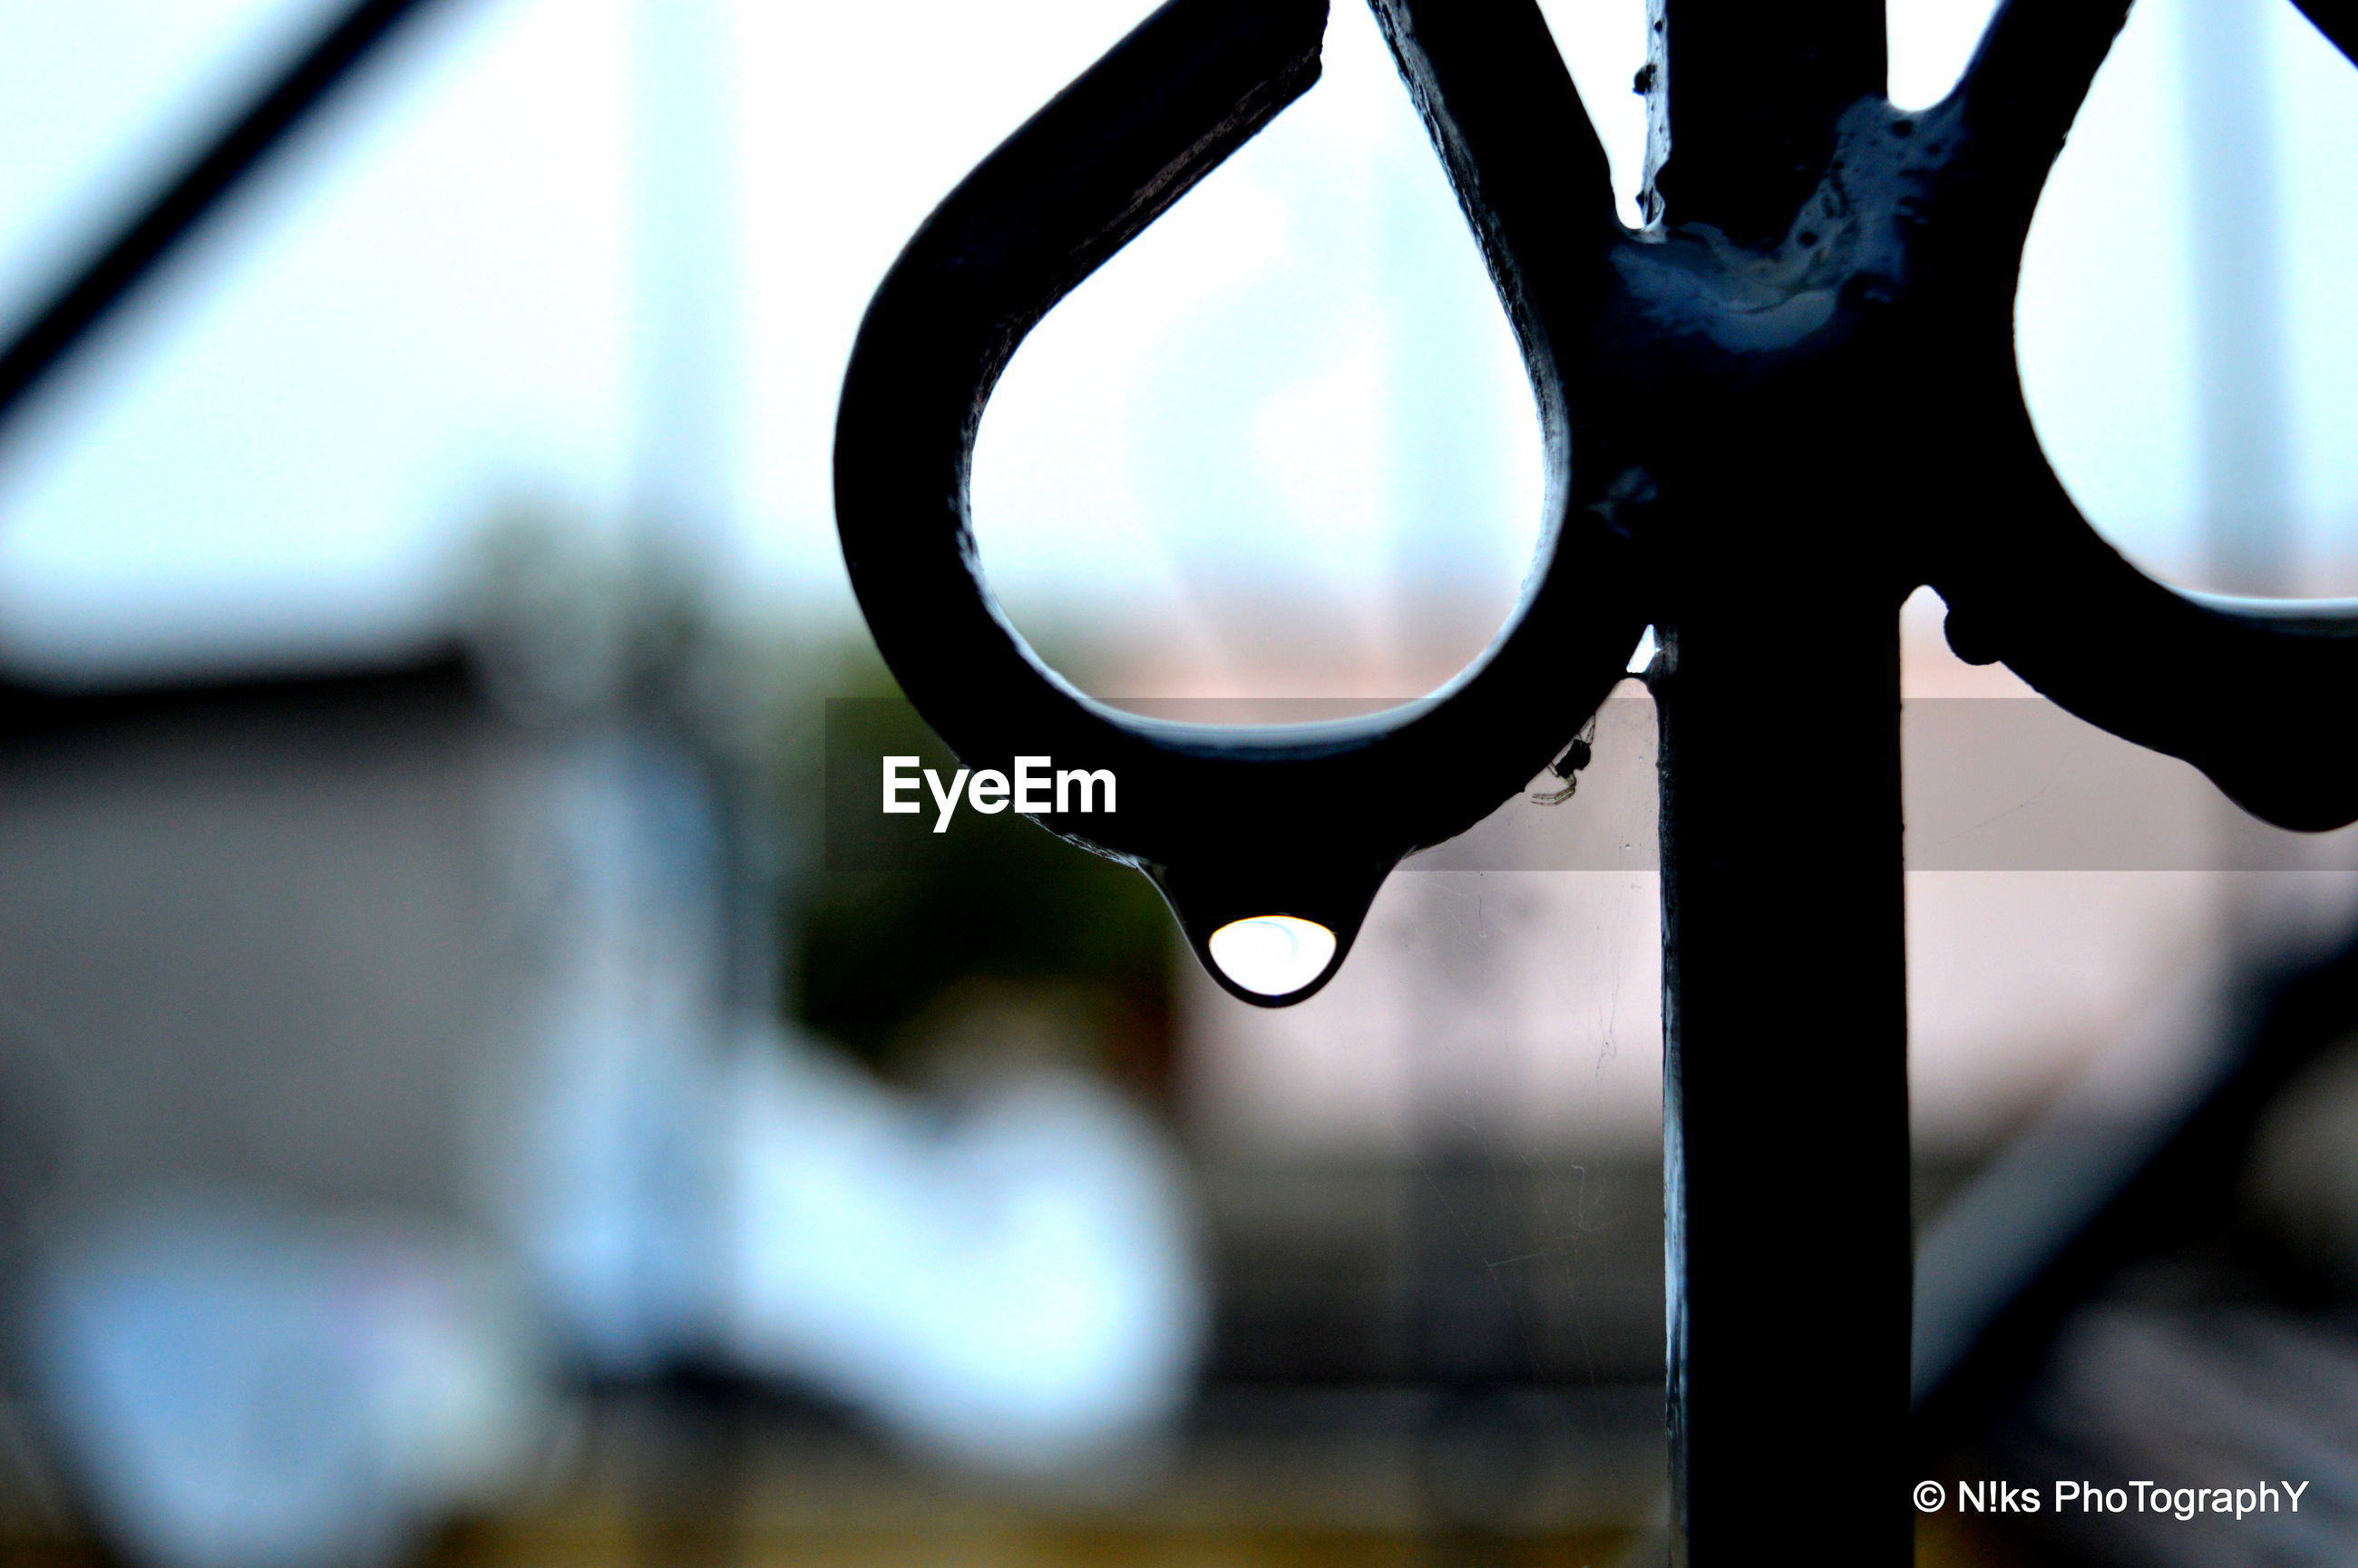 focus on foreground, close-up, metal, indoors, sky, circle, low angle view, drop, safety, metallic, protection, no people, transparent, selective focus, day, window, tree, hanging, glass - material, geometric shape